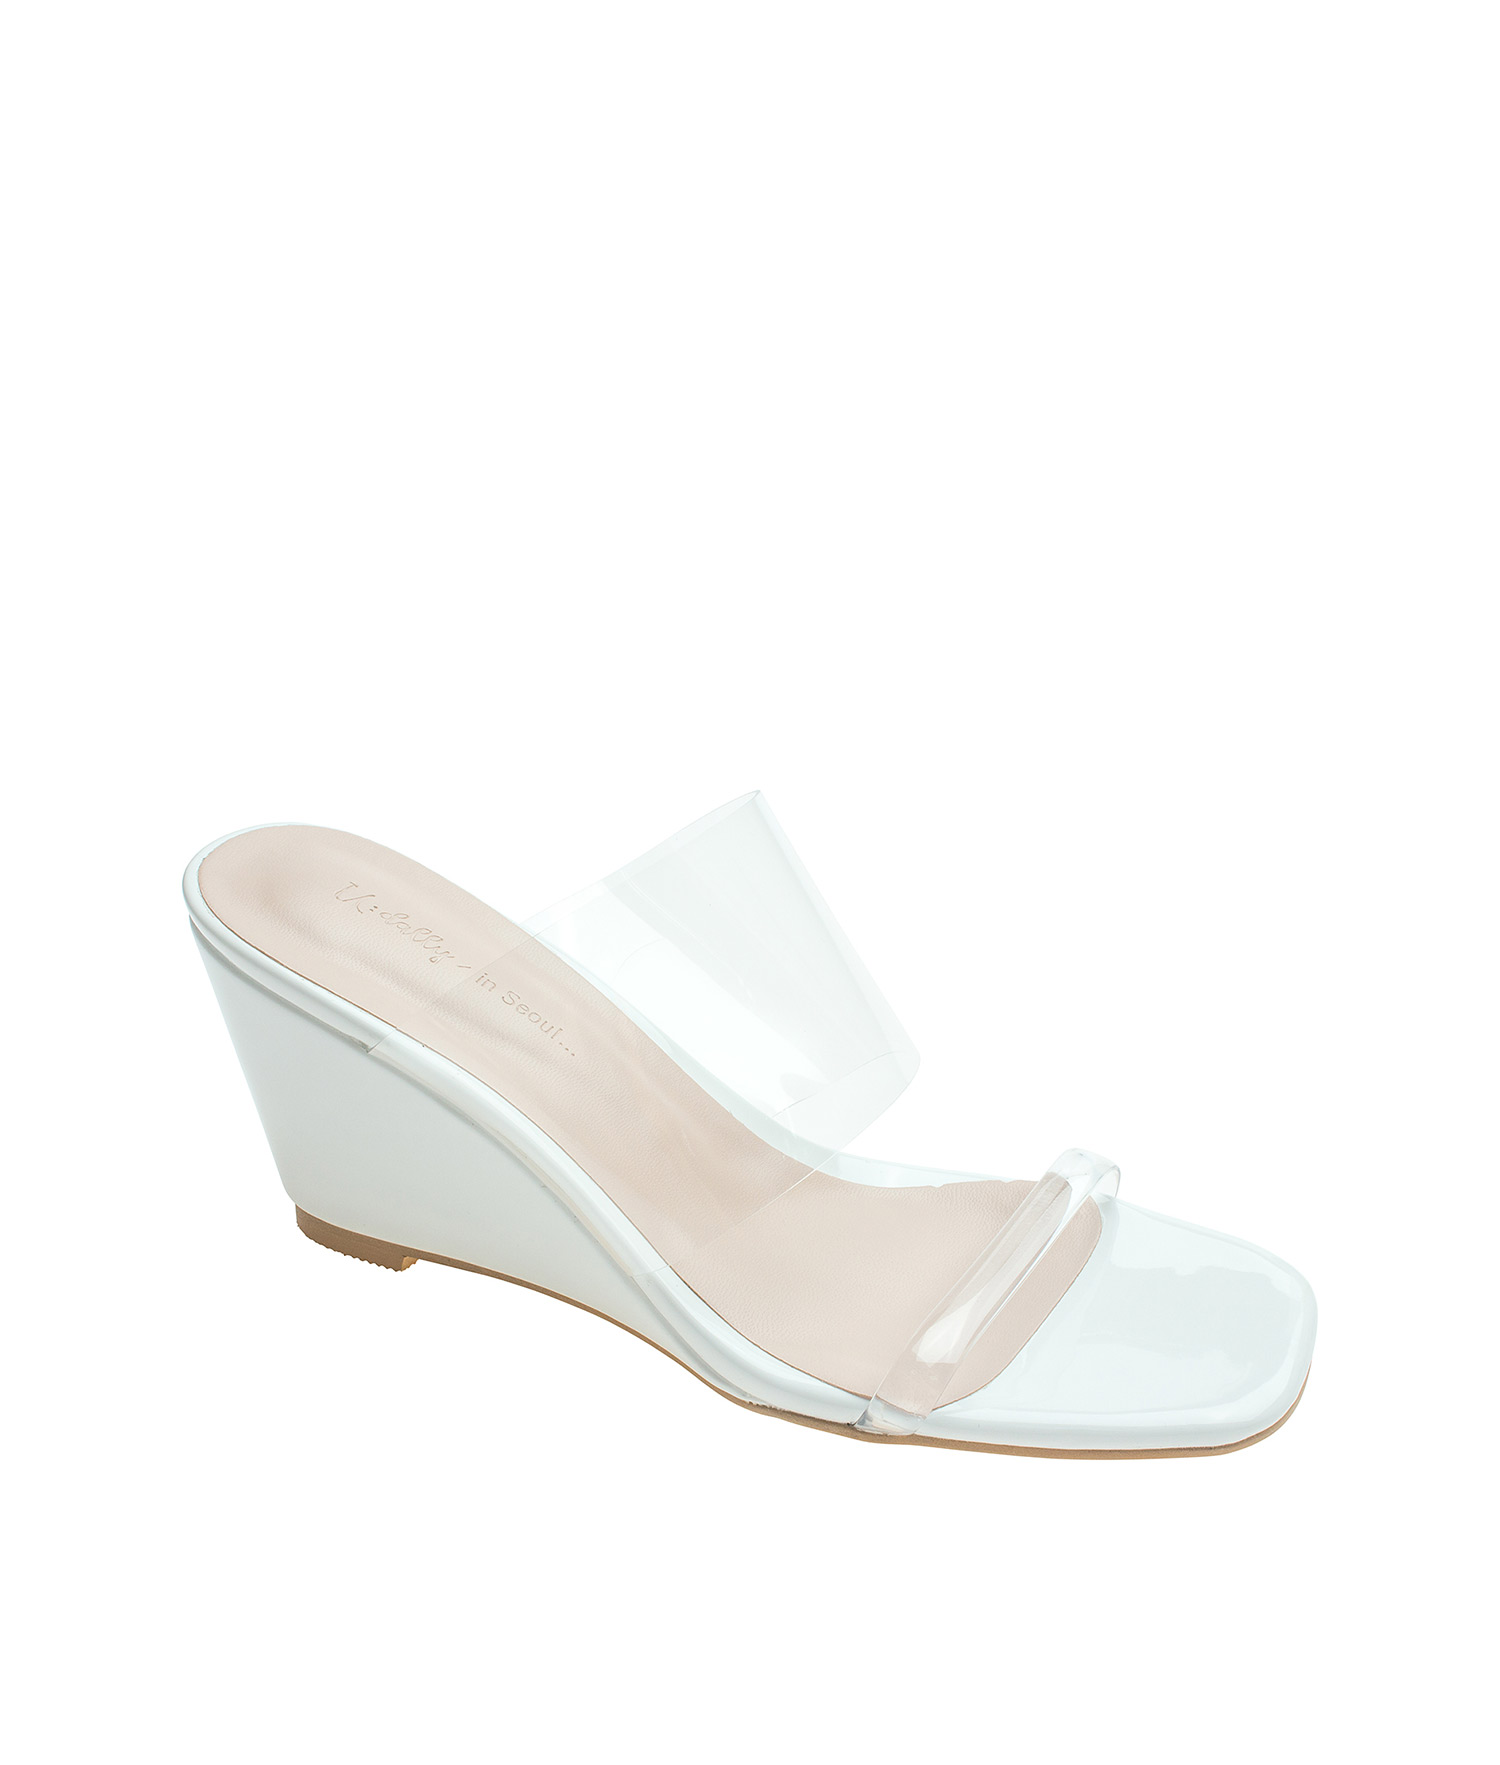 1bba44fdc AnnaKastle Womens Double Clear Strap Wedge Heel Mule Sandals White